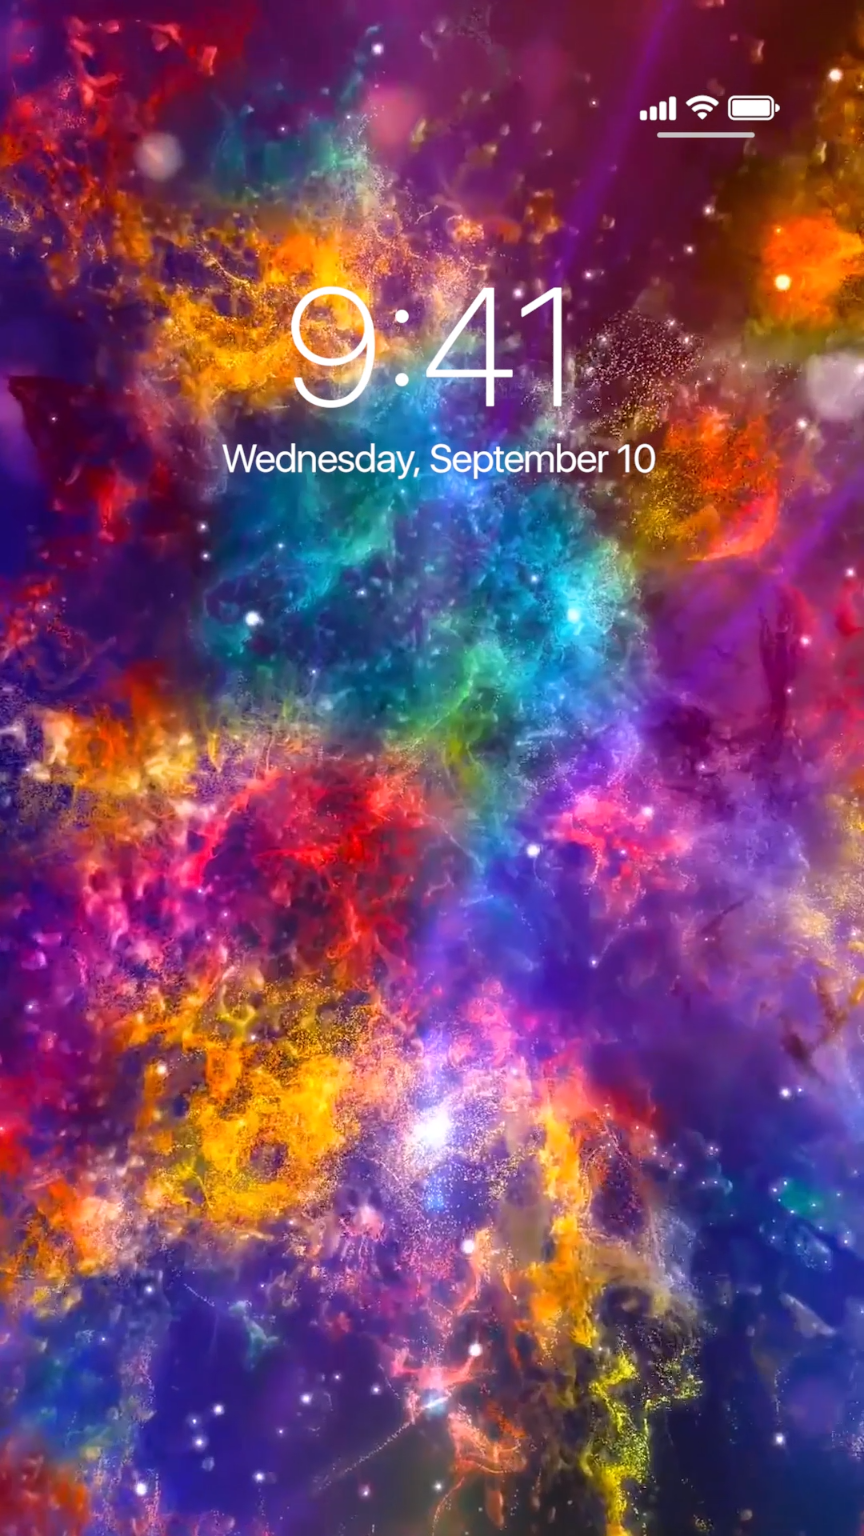 Incredible Live Wallpapers Video Live Wallpaper Iphone Iphone Wallpaper Video Live Wallpapers